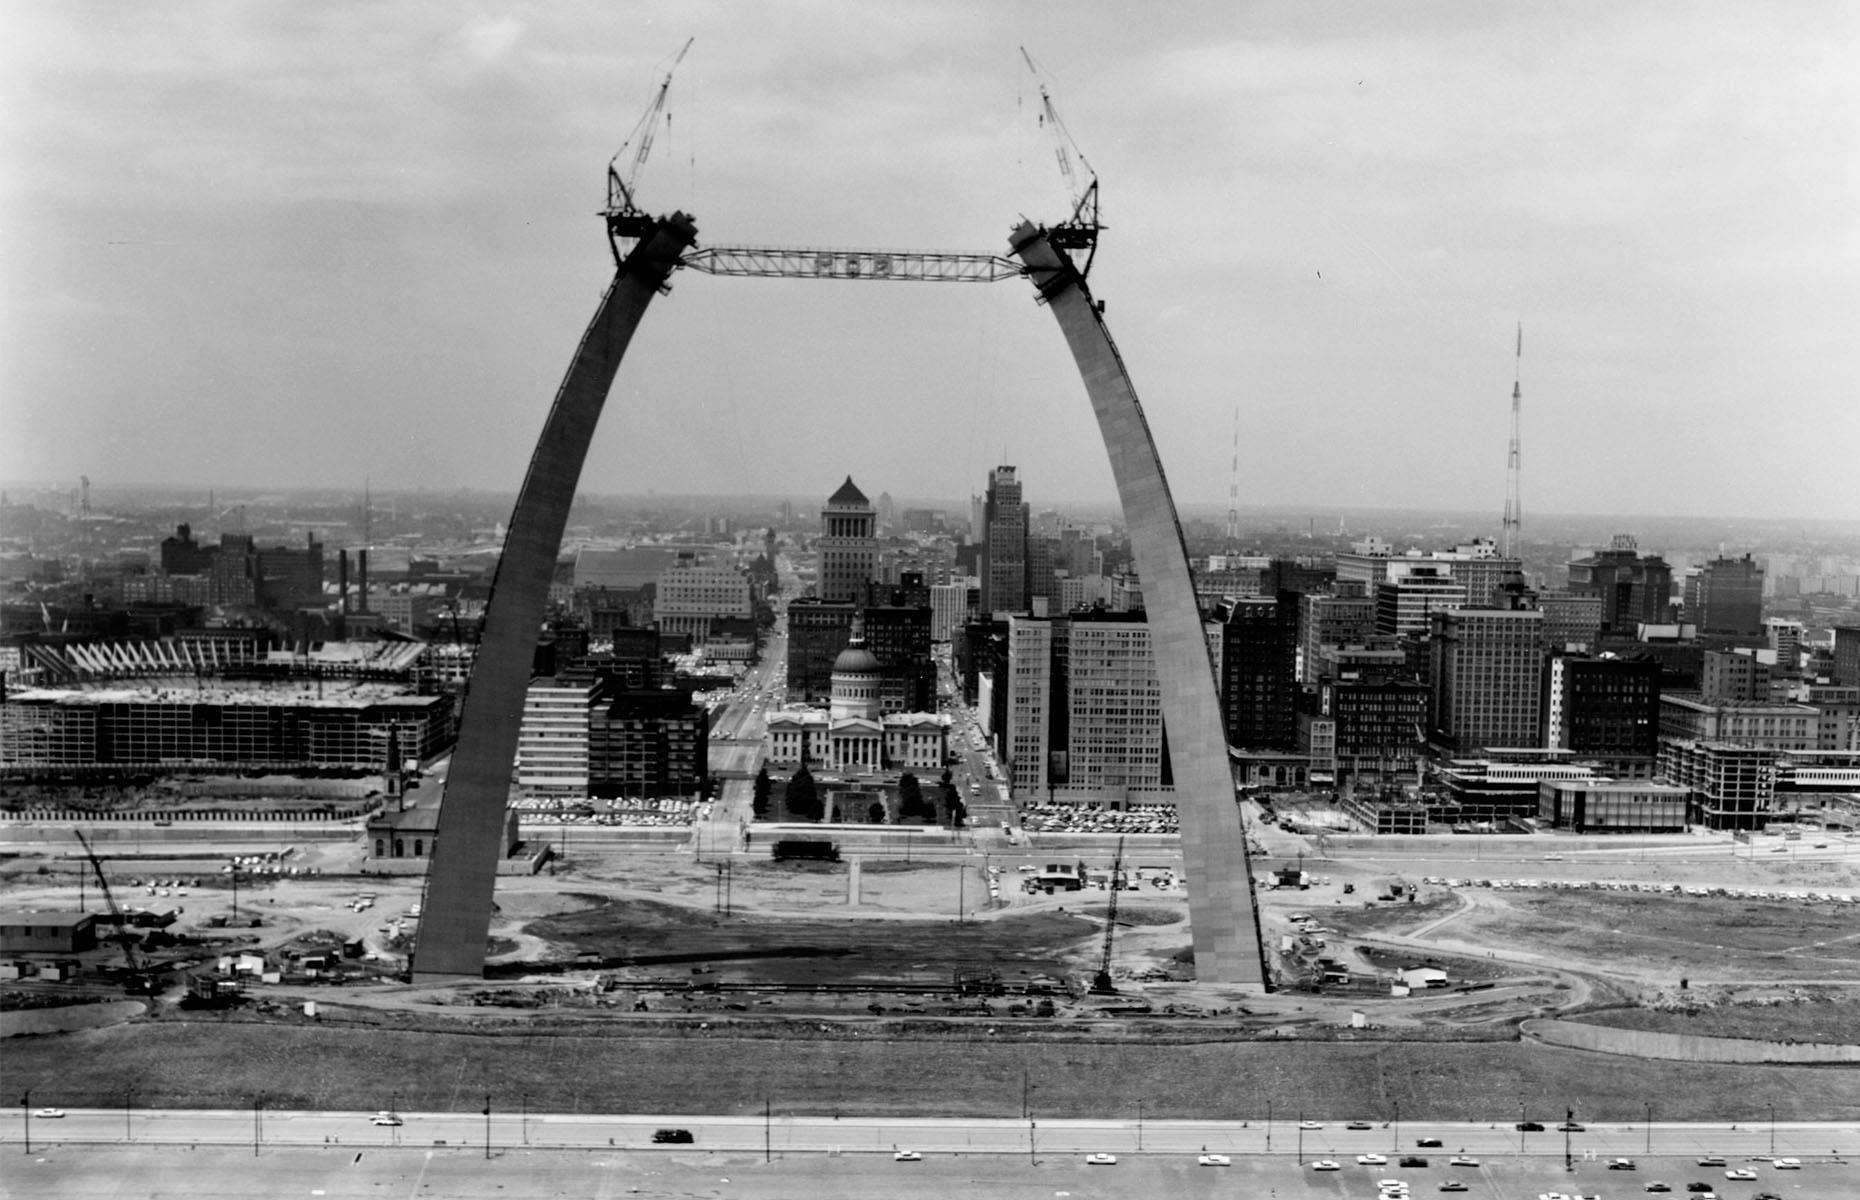 Slide 25 of 41: The monument's design was decided in a contest in the 1940s, which saw Eero Saarinen's gigantic 630-foot (192m) arch beat out the competition. It's captured here in 1965, the same year it was completed.